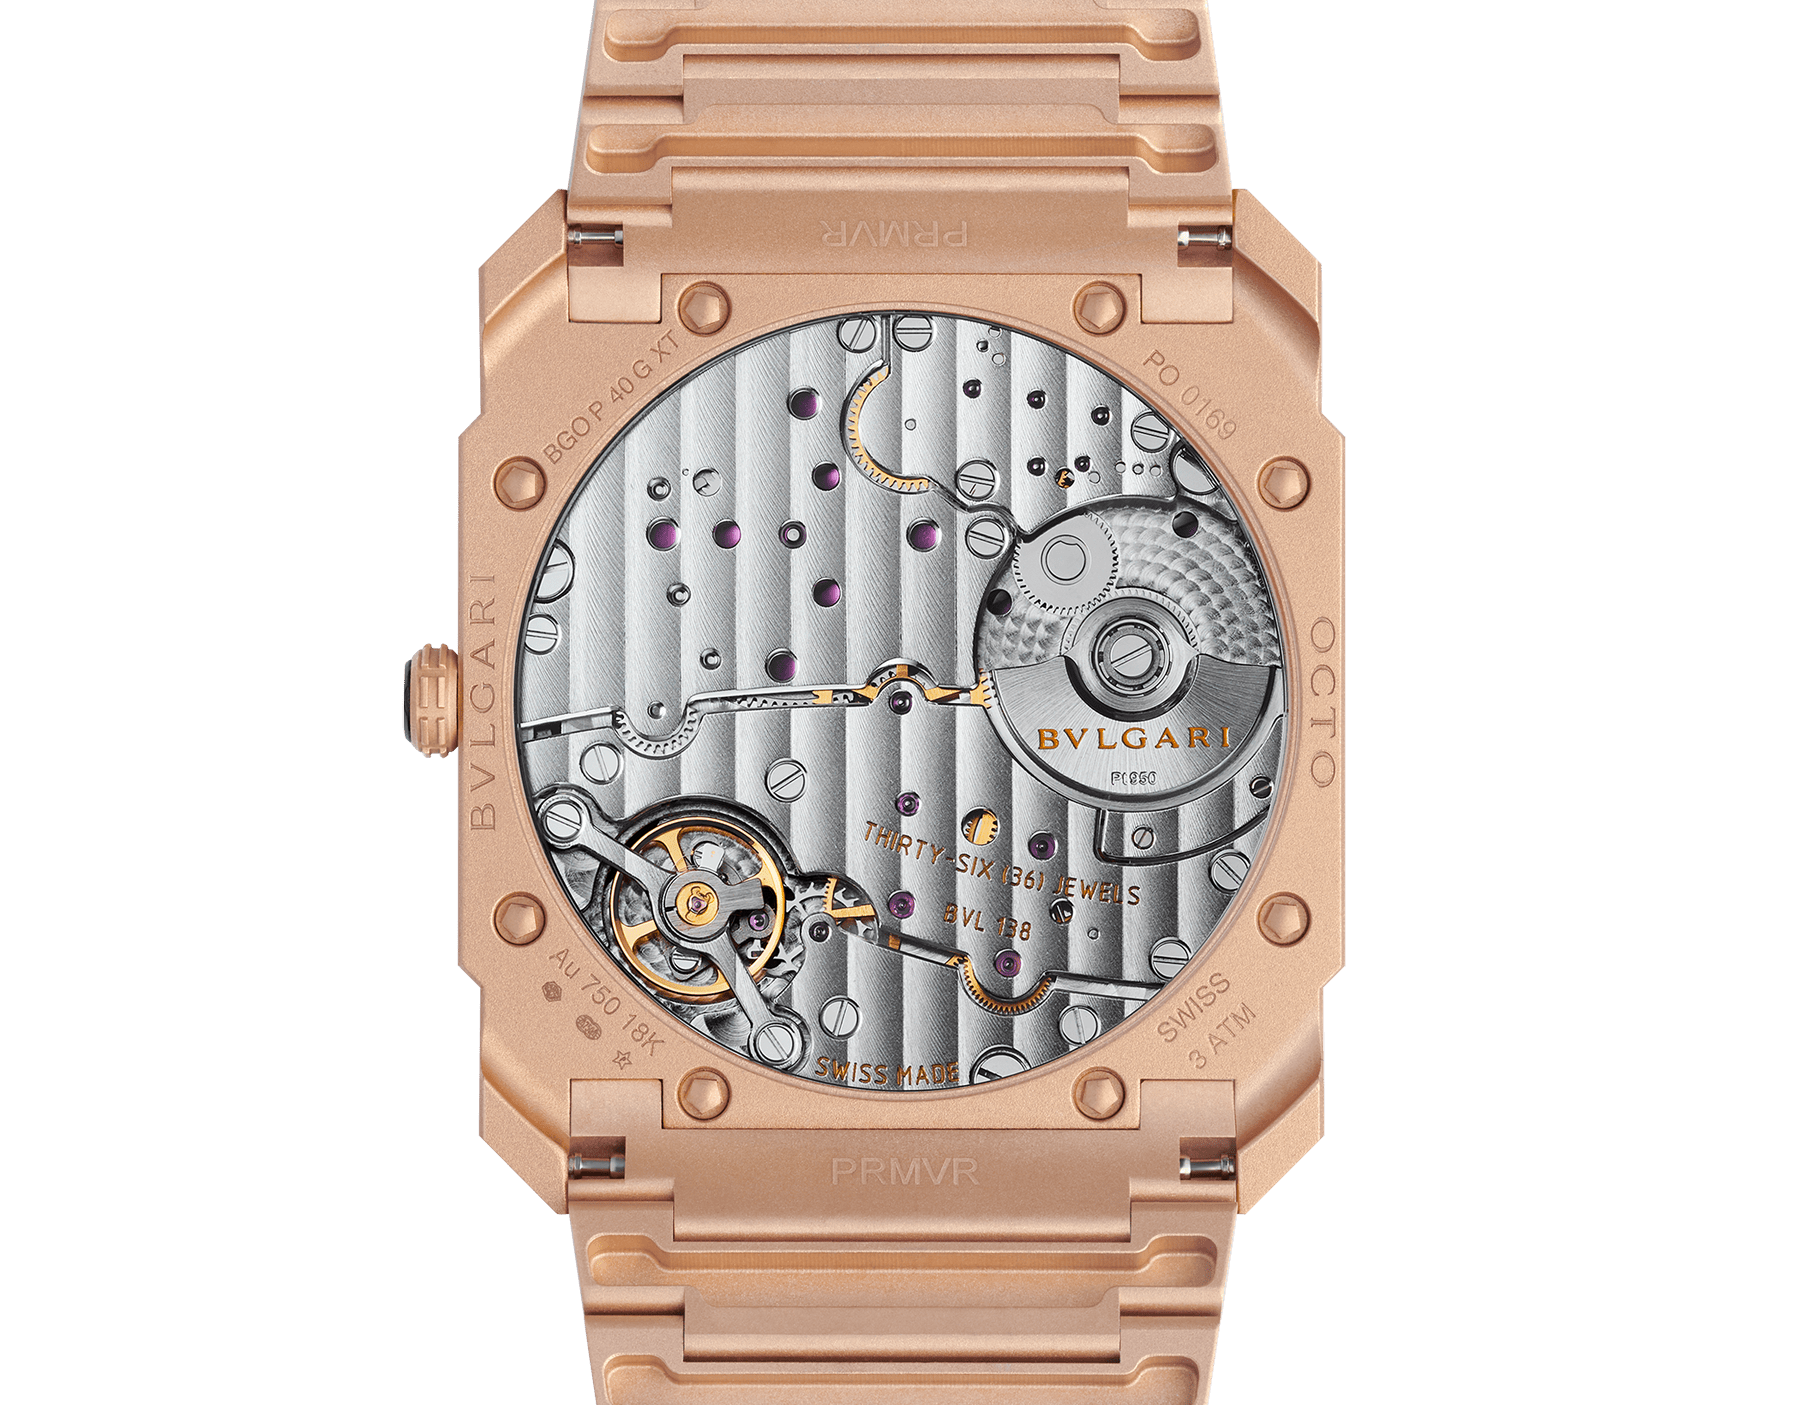 Octo Finissimo Automatic watch with mechanical manufacture movement, automatic winding, platinum microrotor, small seconds, extra-thin sandblasted 18 kt rose gold case and bracelet, and 18 kt rose gold dial 102912 image 4